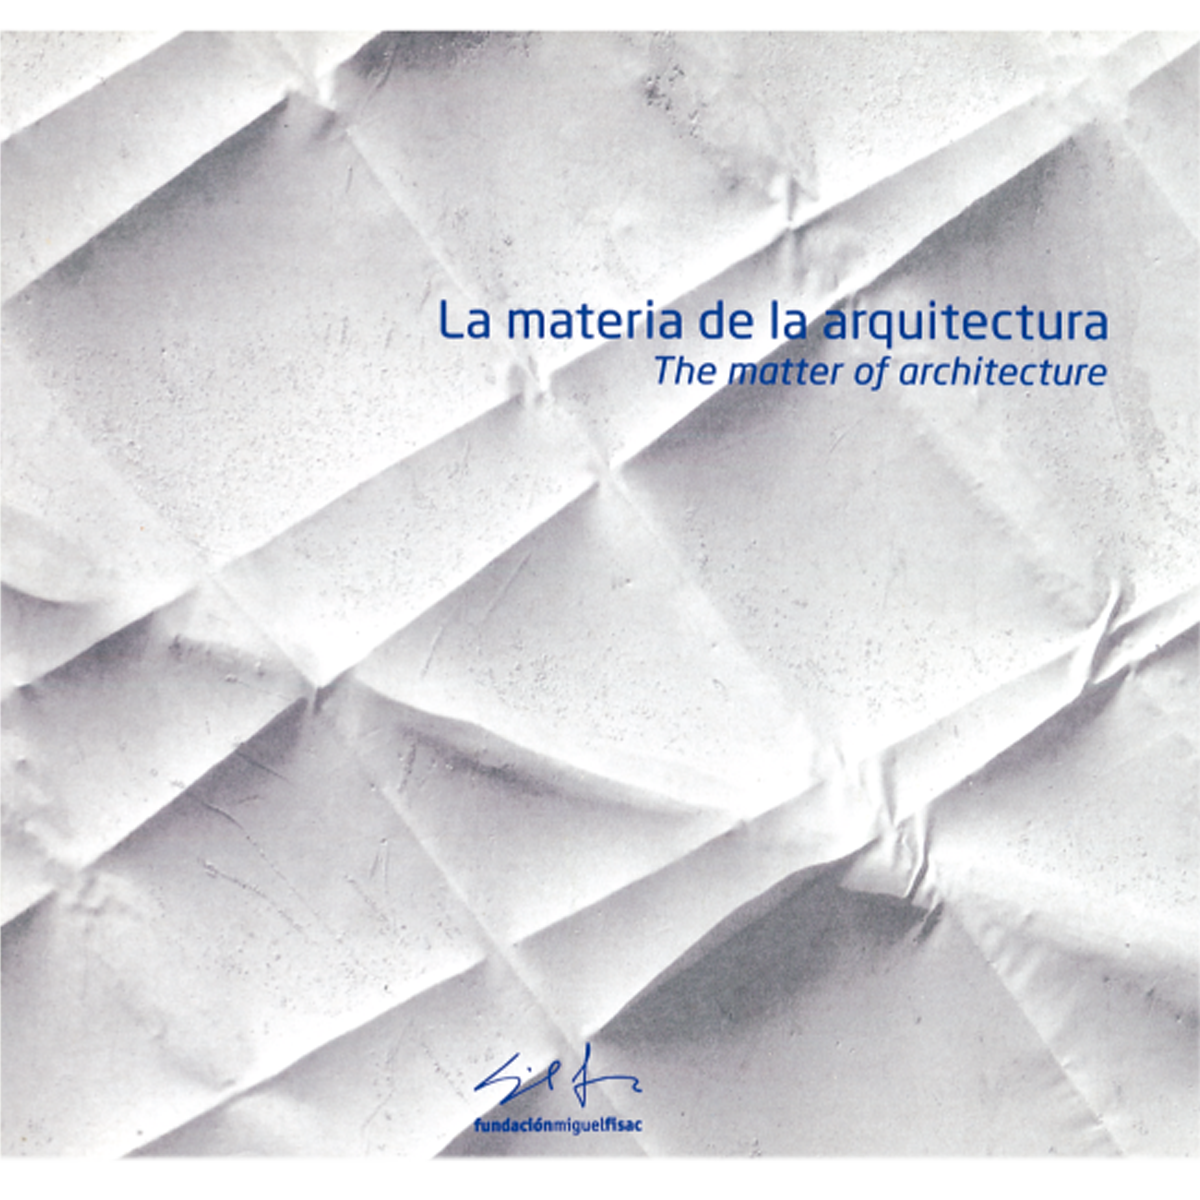 The matter of architecture